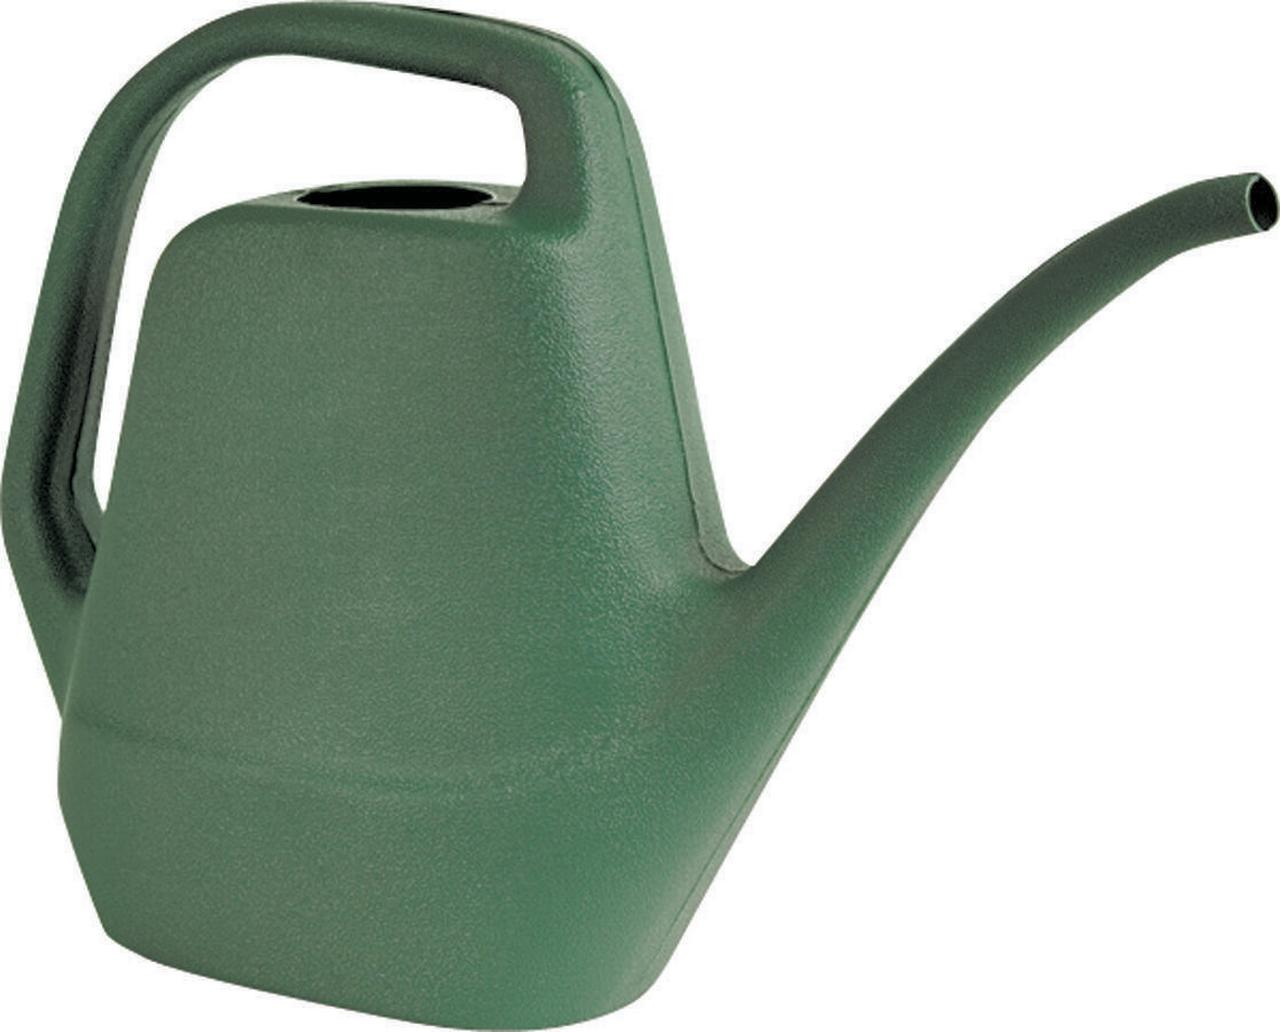 Southern Patio WC2012FE Watering Can, 80 oz, 9-7 8 in H, Long, Plastic, Green by Ames True Temper